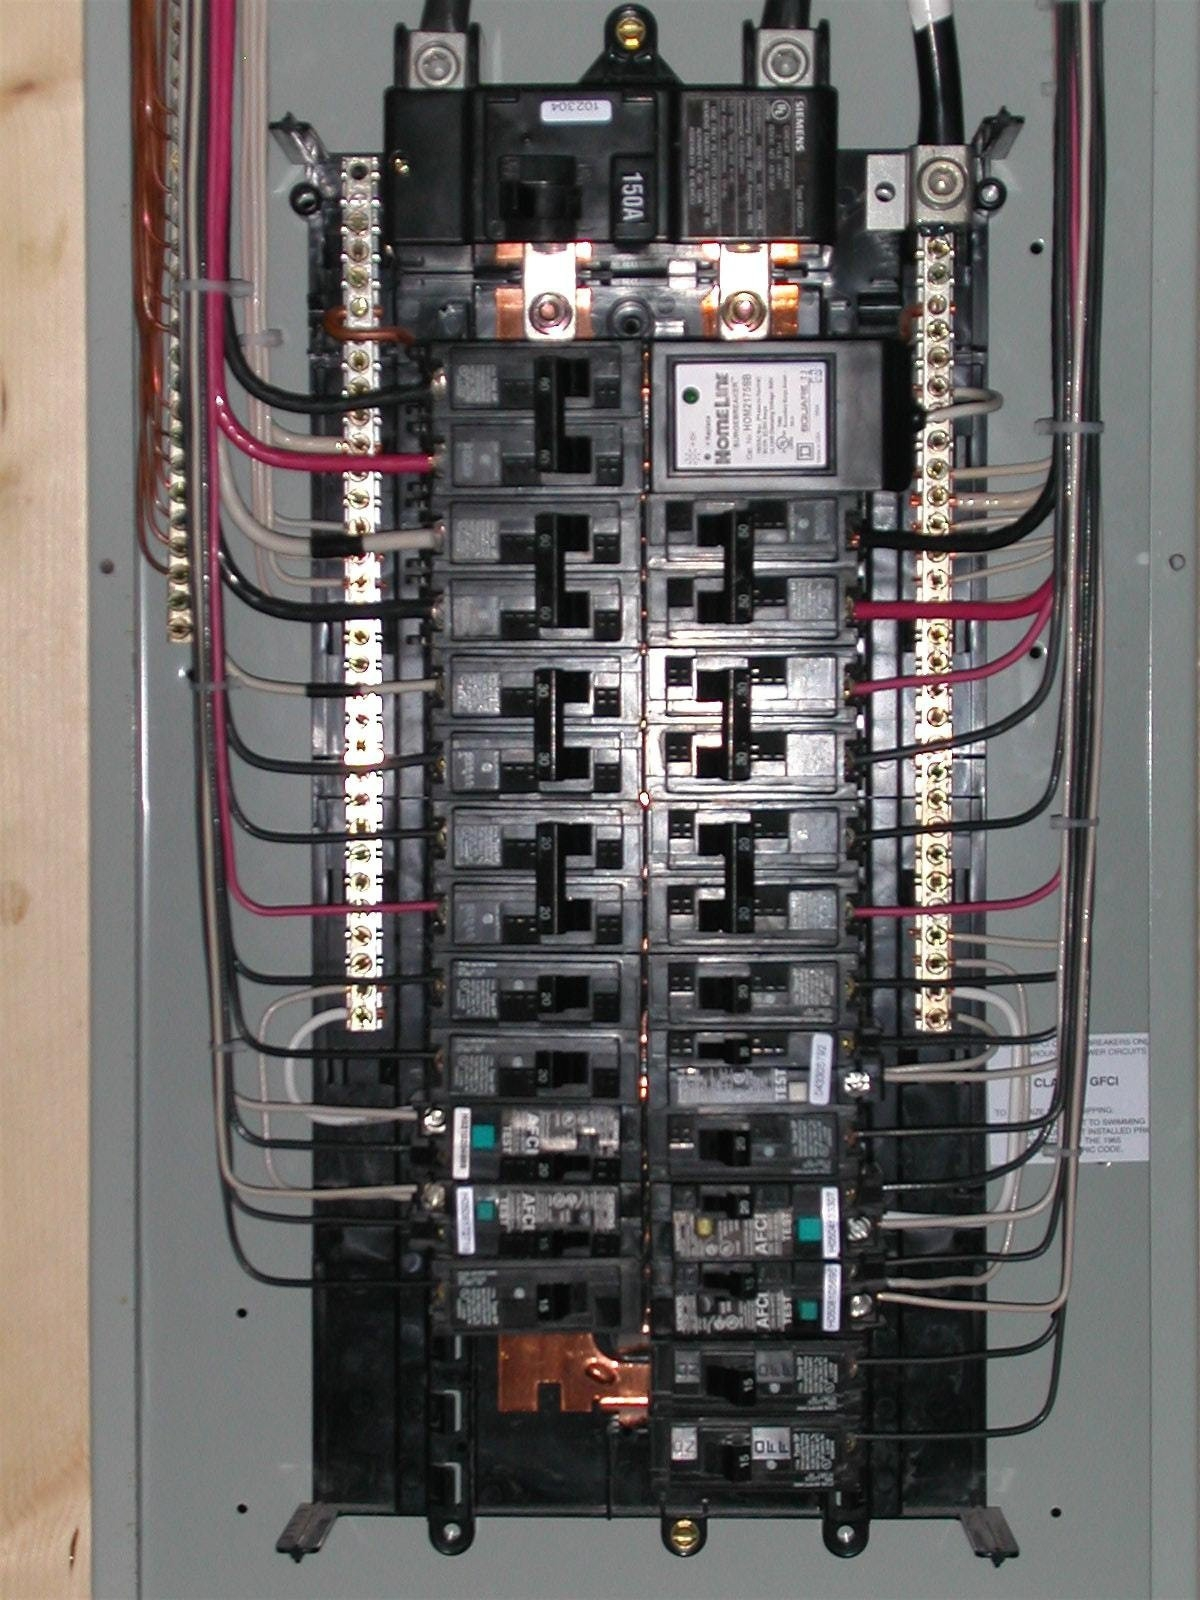 Network Building Wiring Free Download Wiring Diagrams Pictures